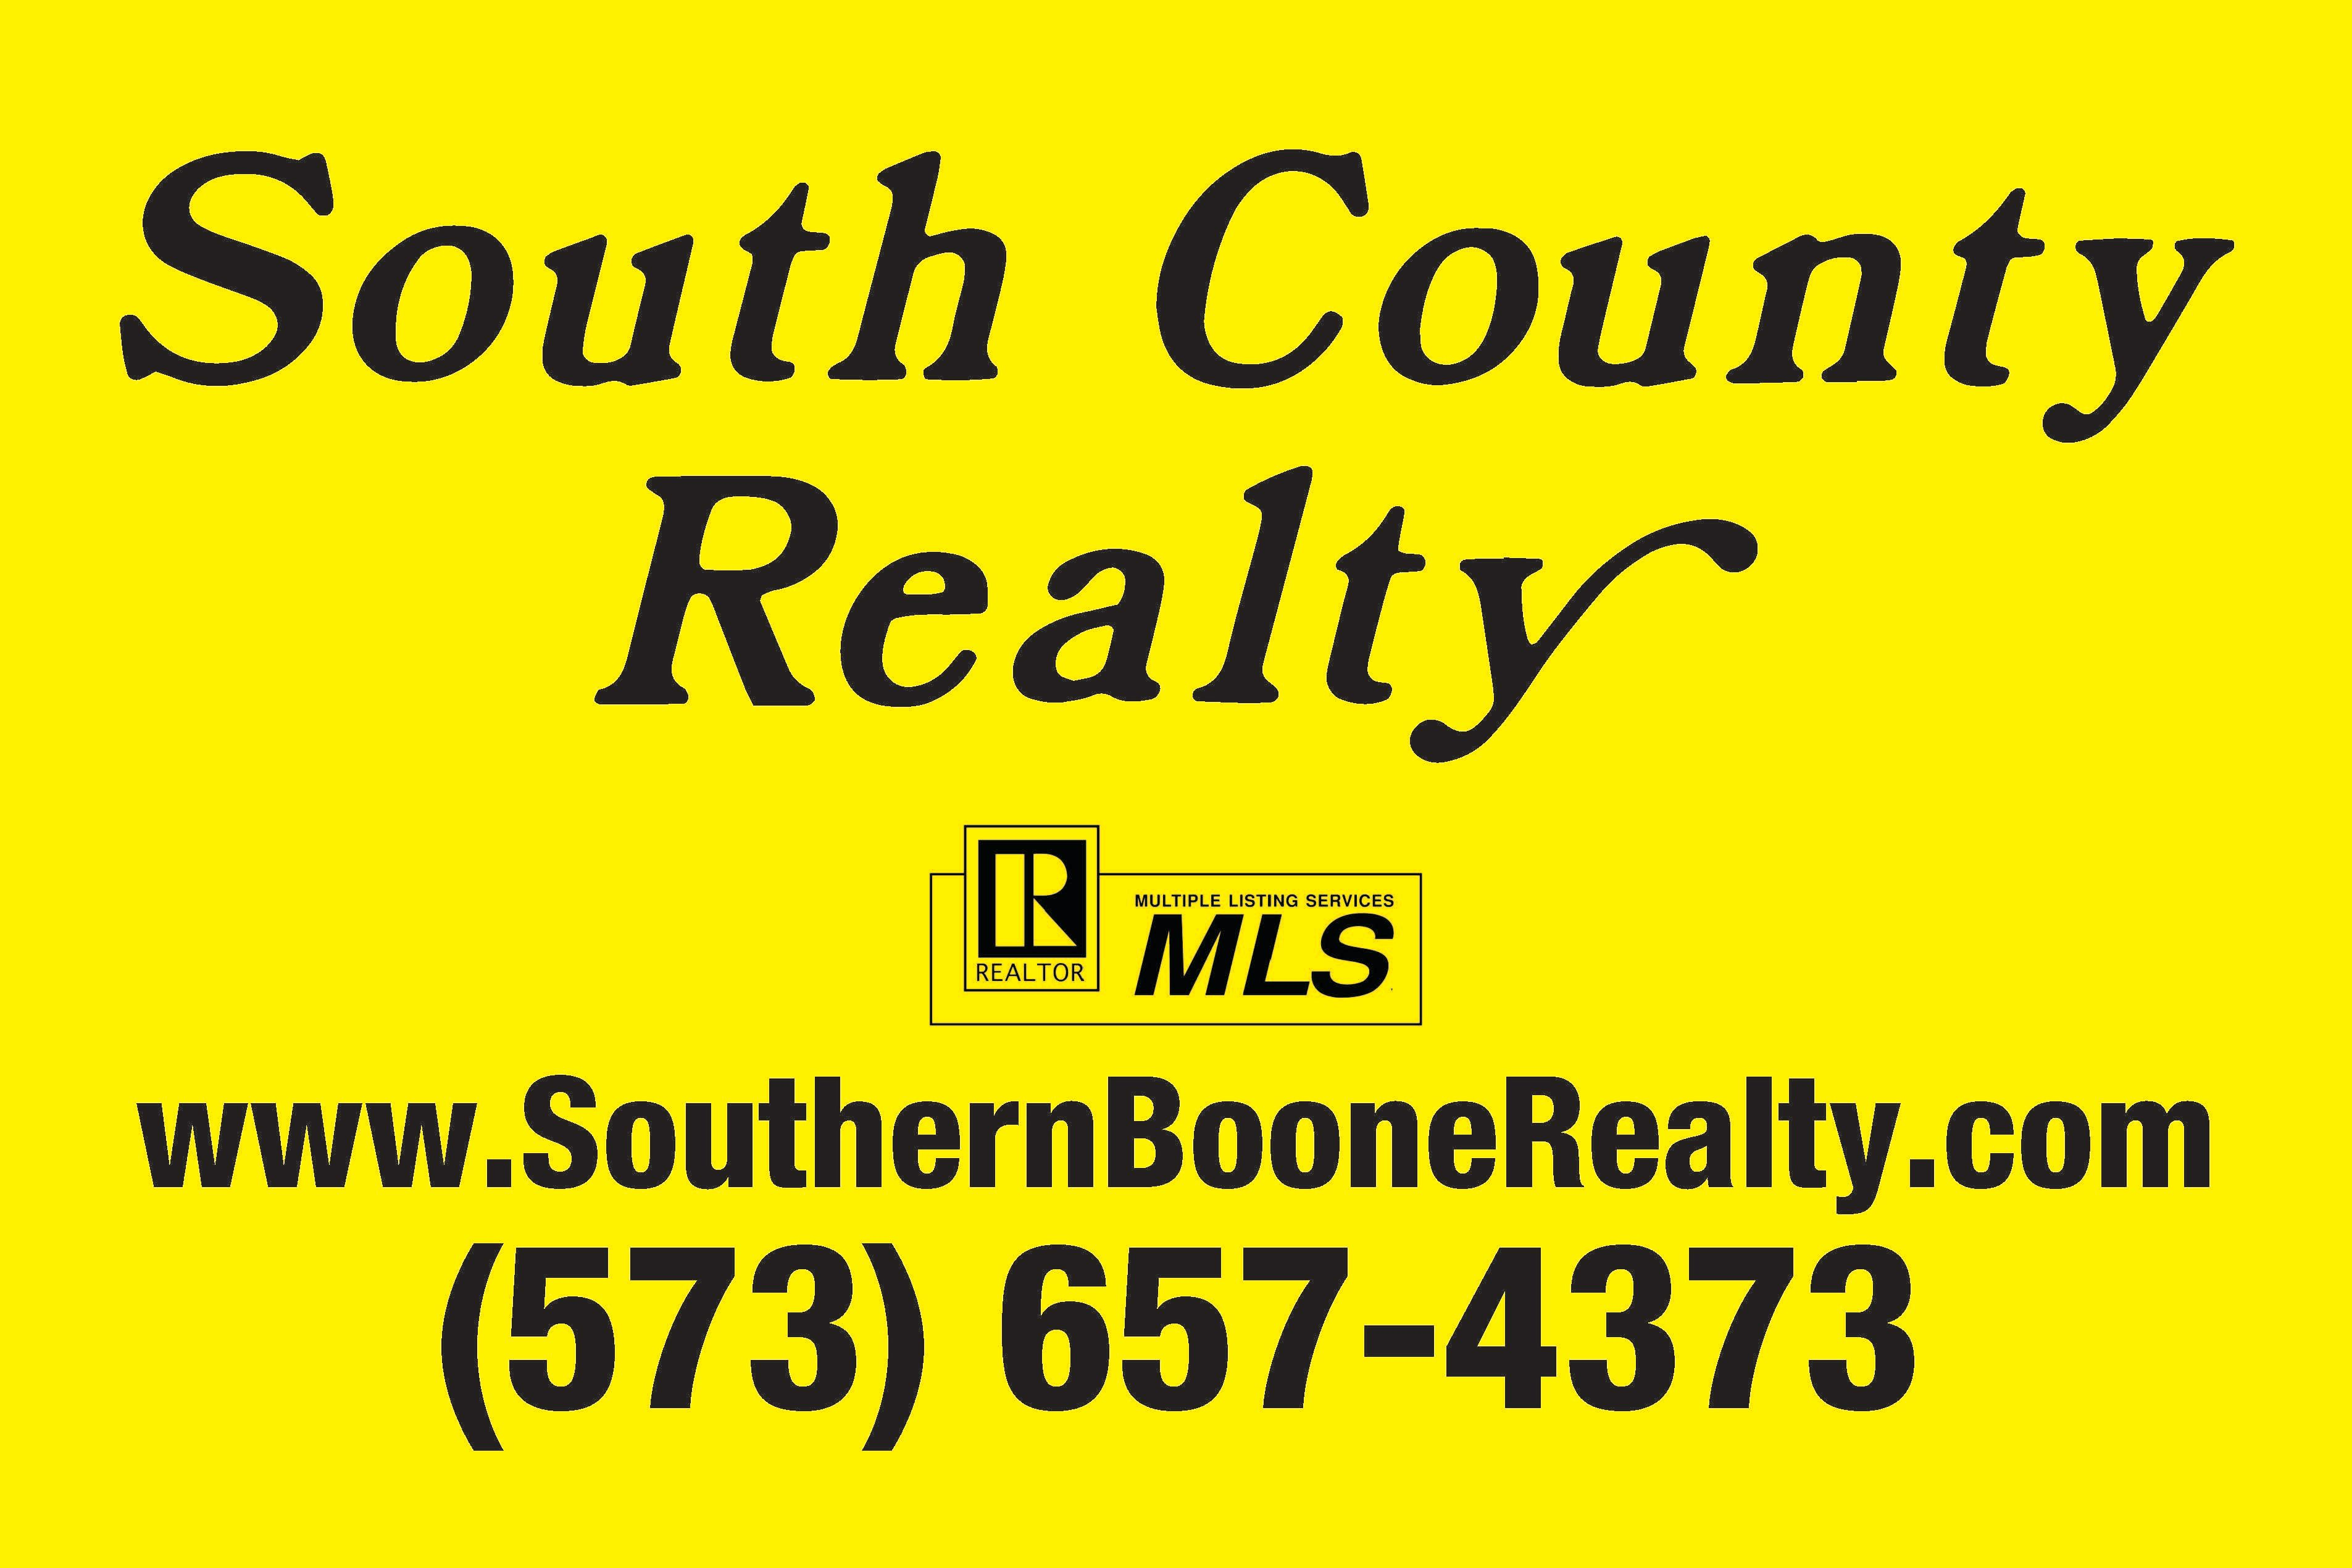 South County Realty